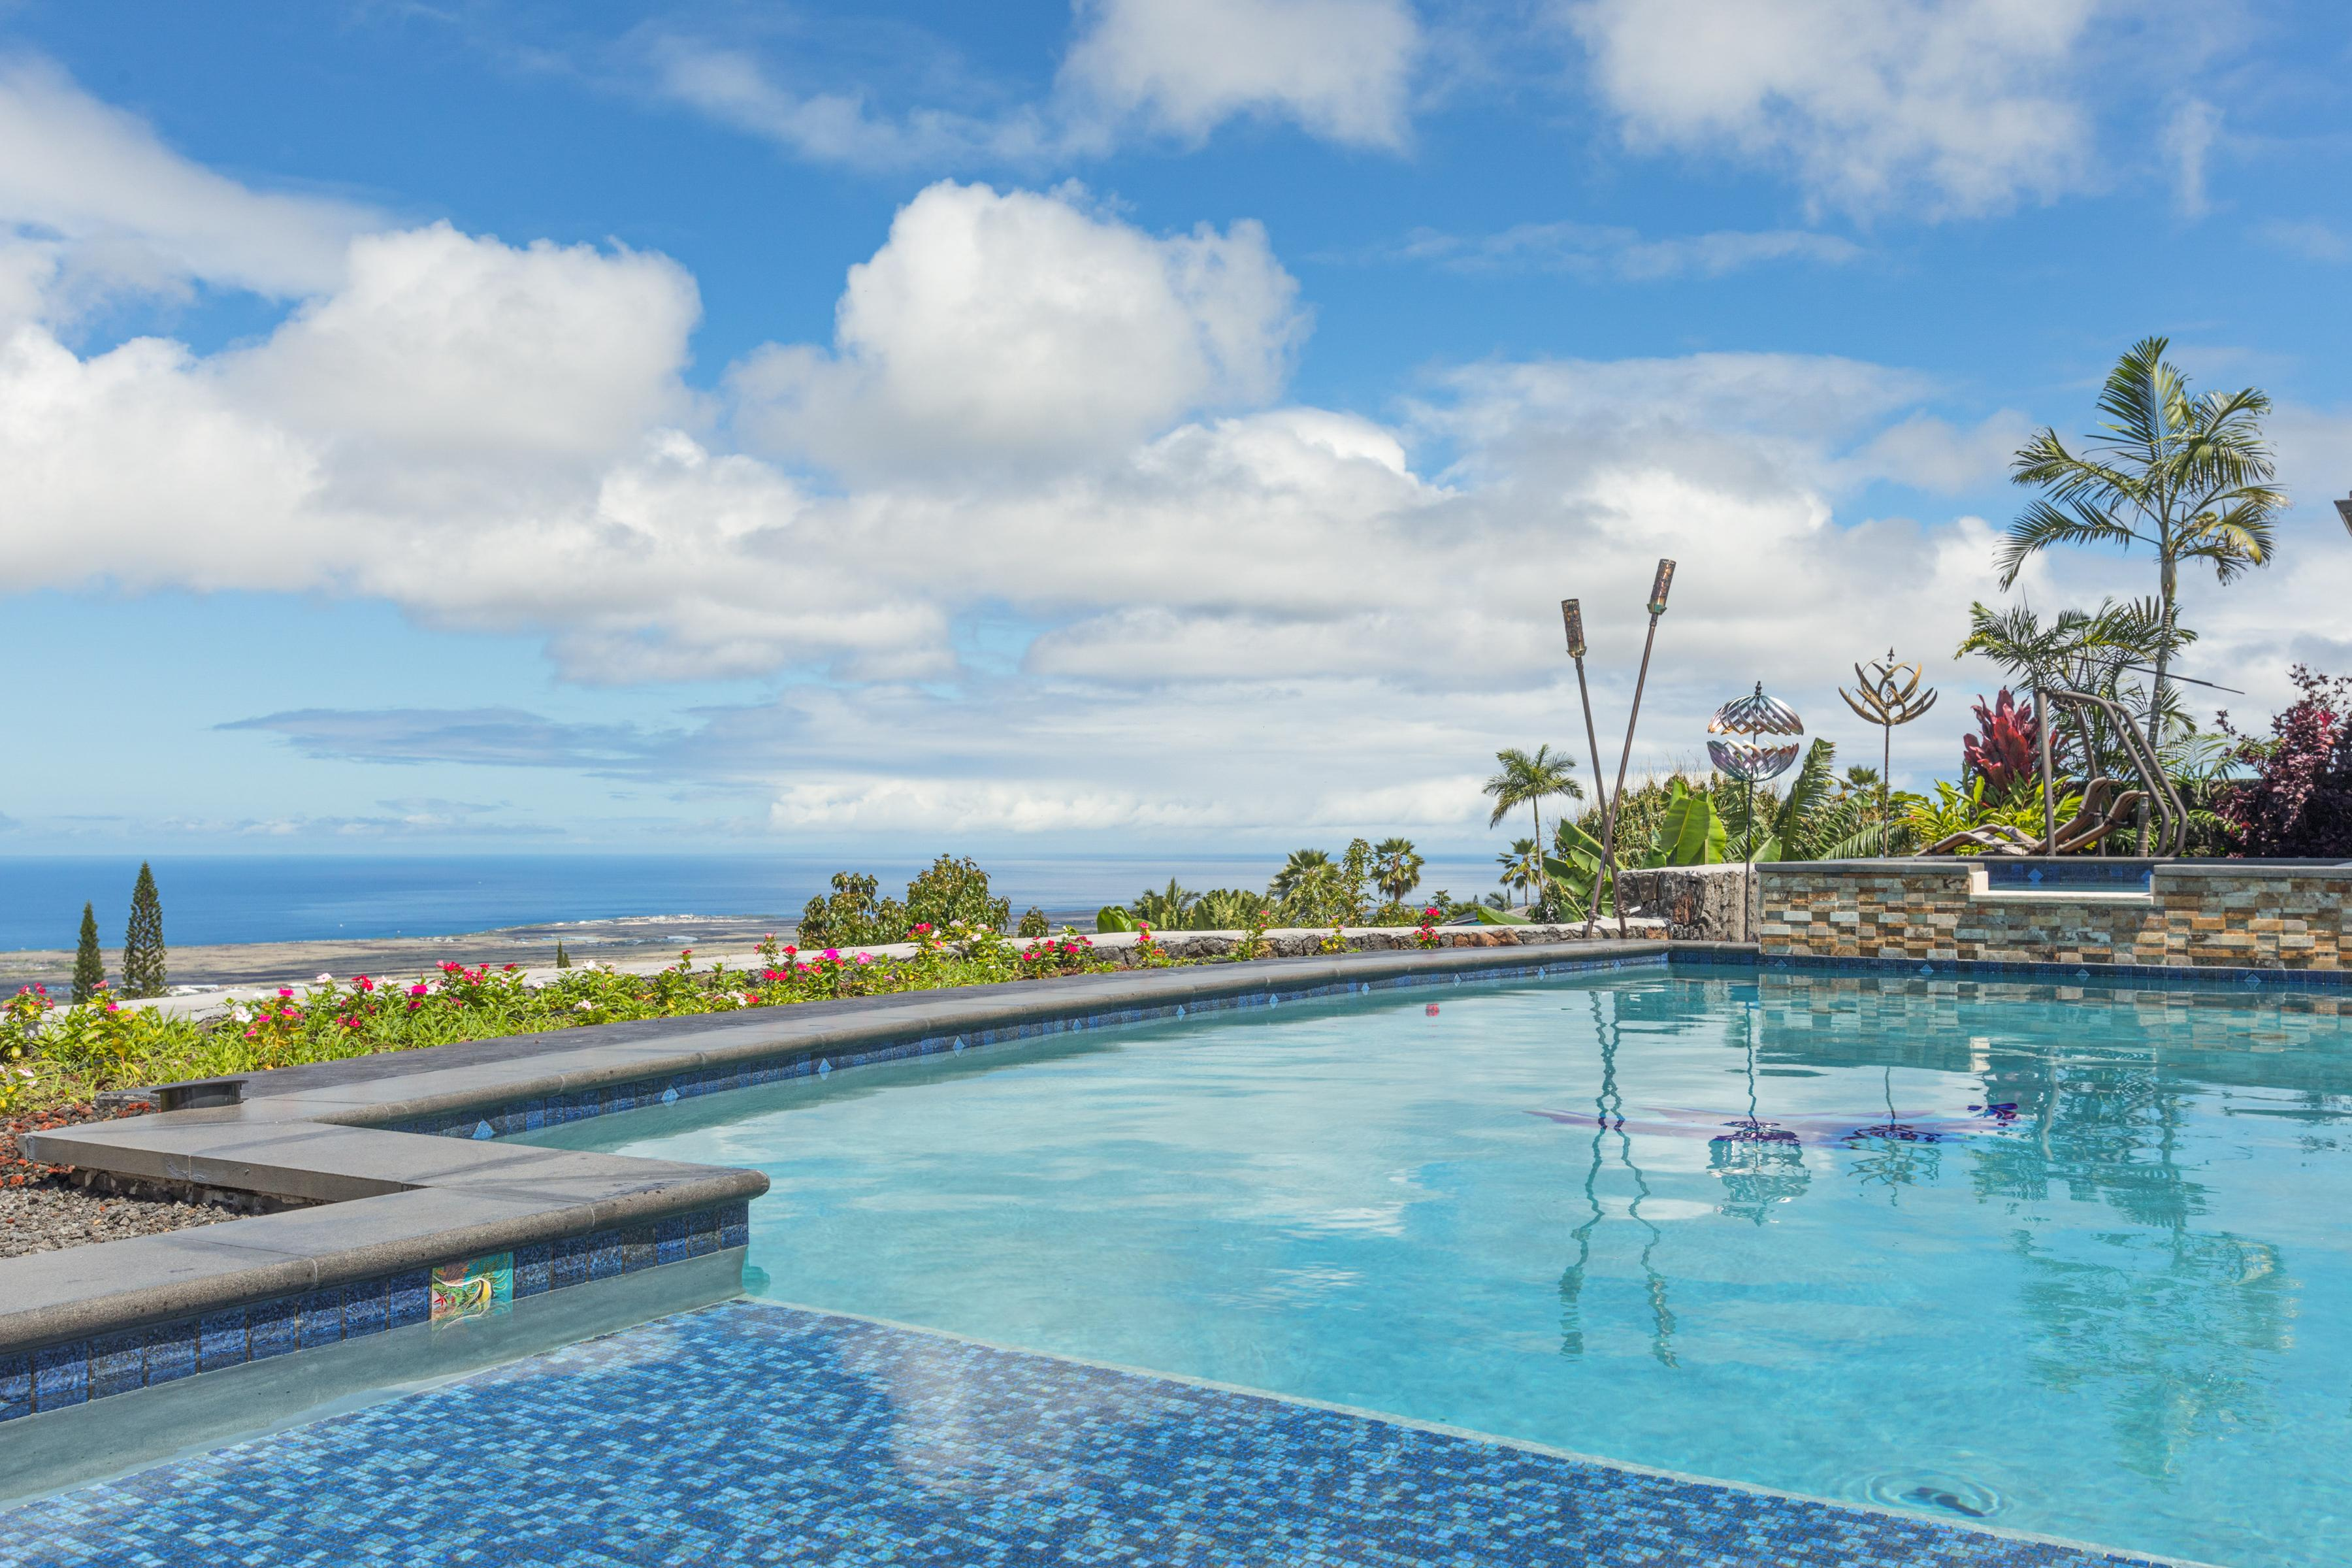 Welcome to Kailua Kona! This stunning home is professionally managed by TurnKey Vacation Rentals.